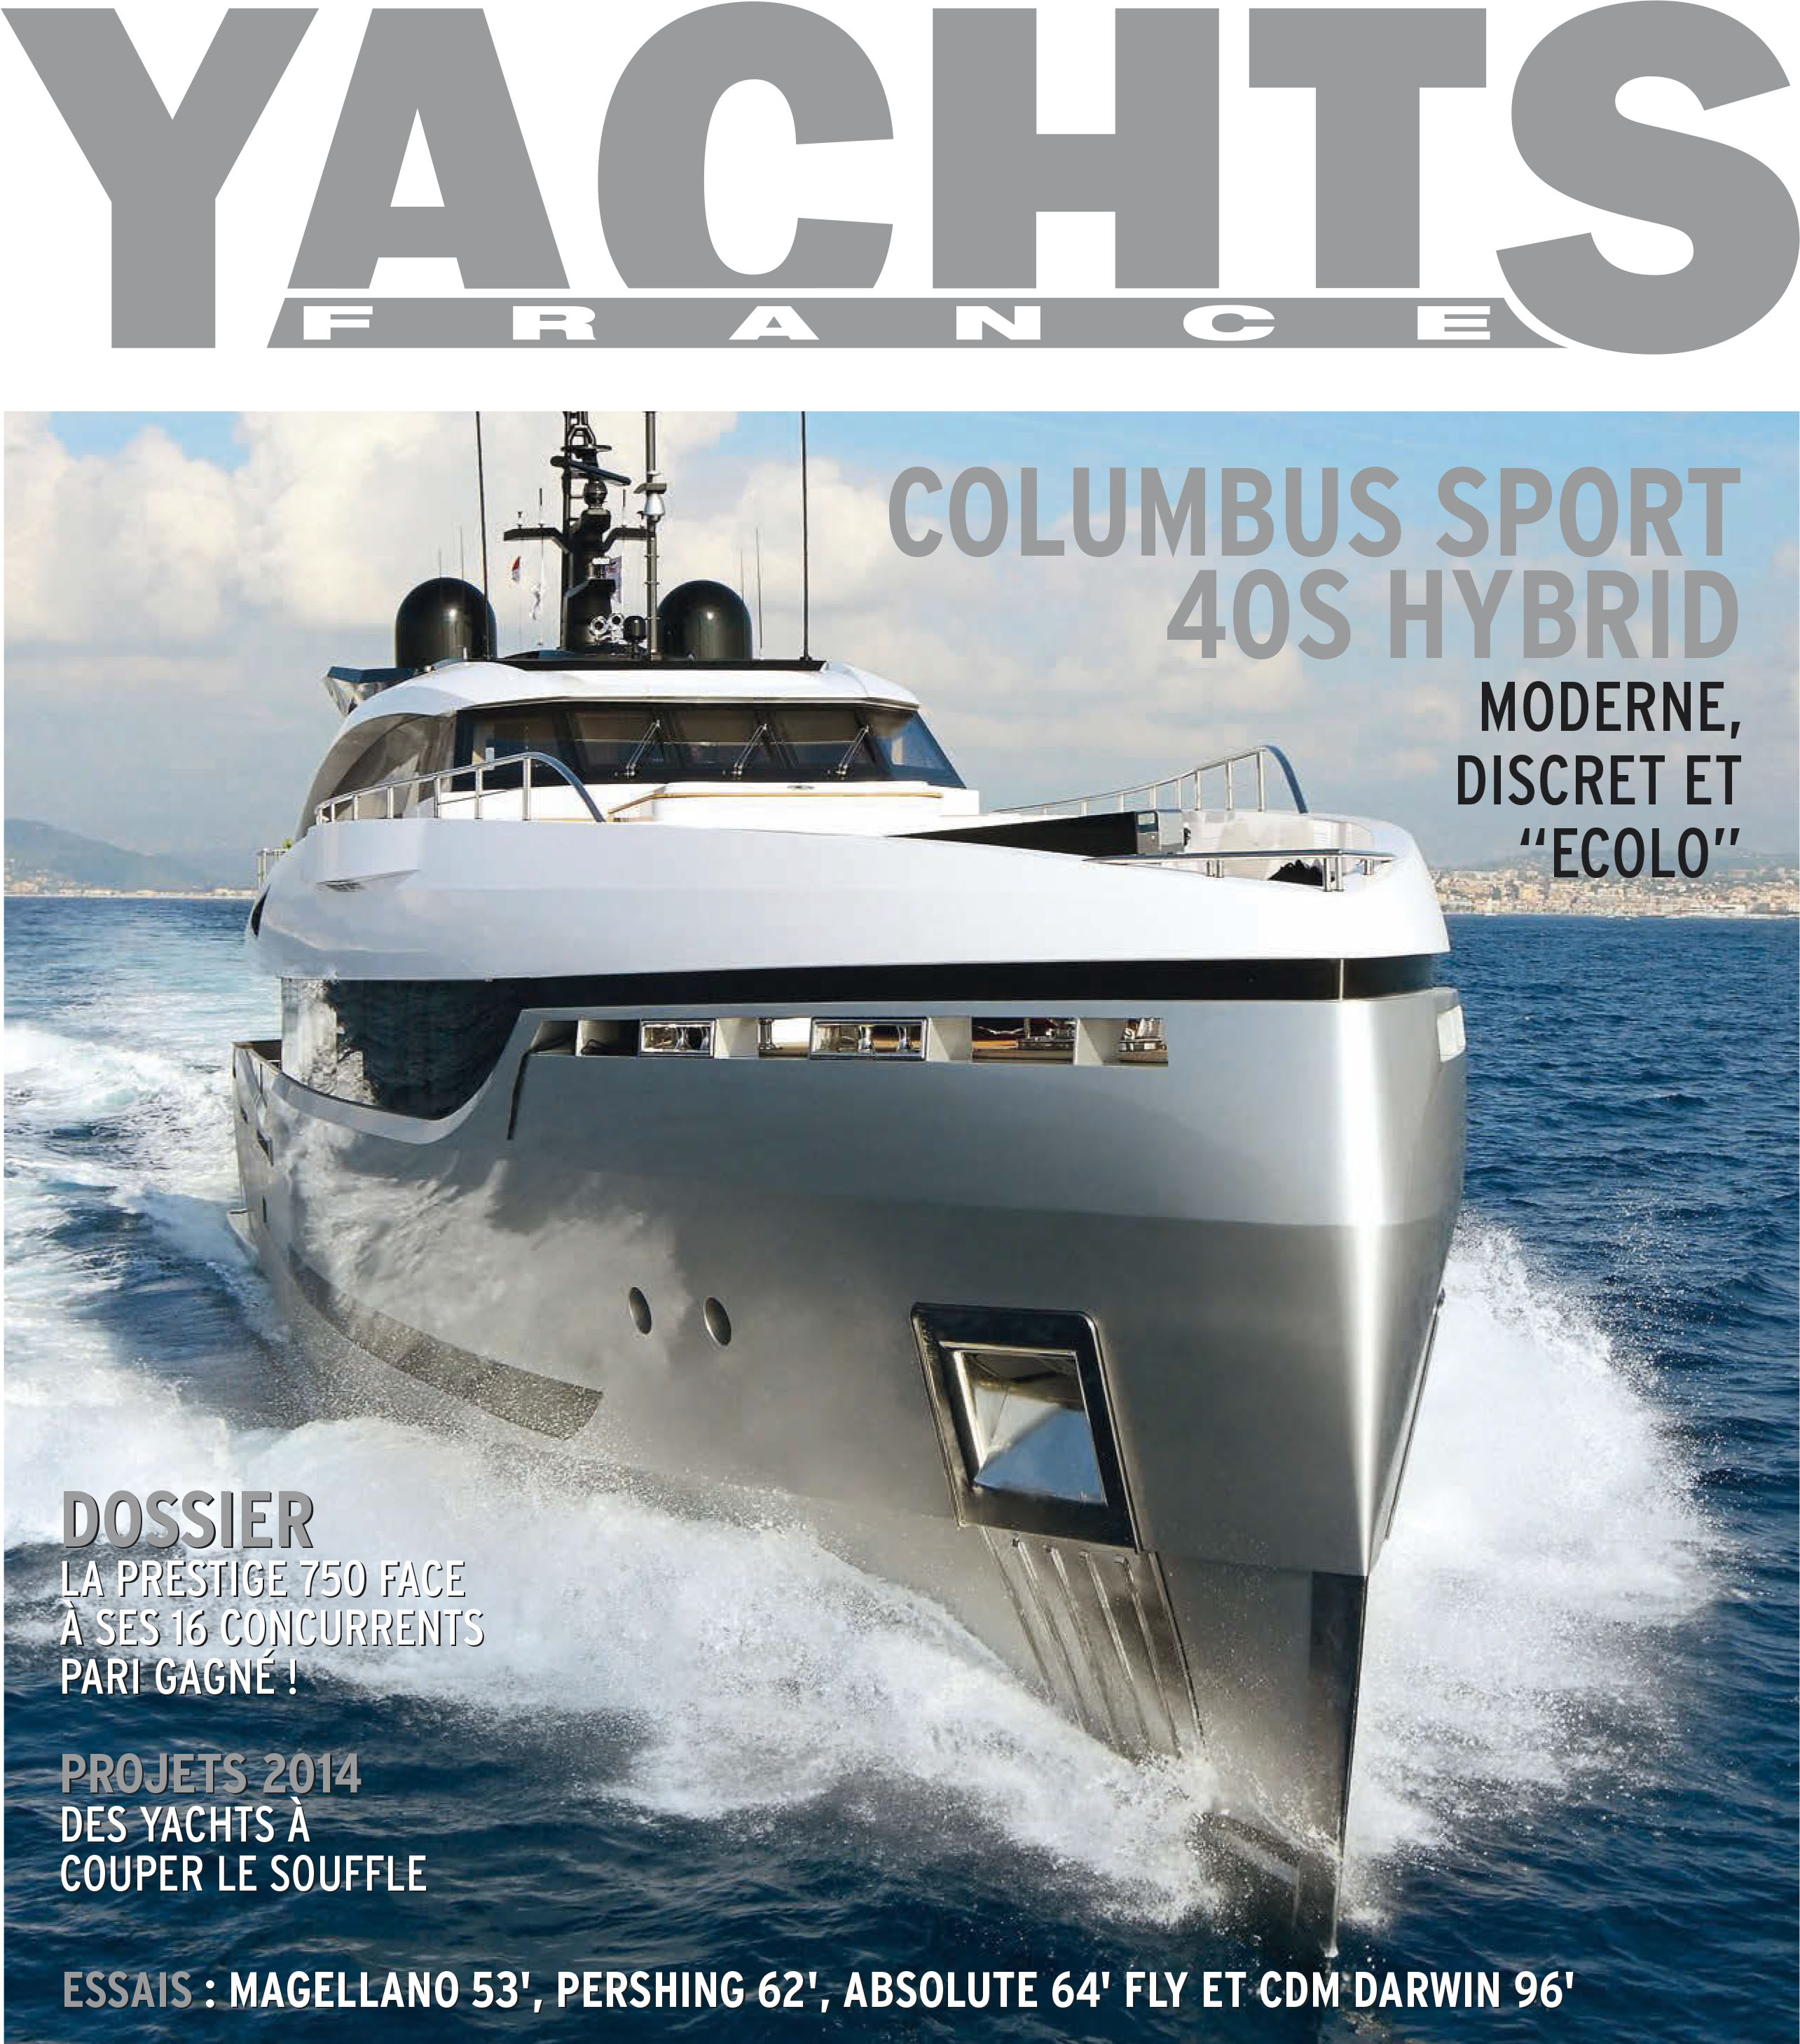 Yachts France, January/February 2014